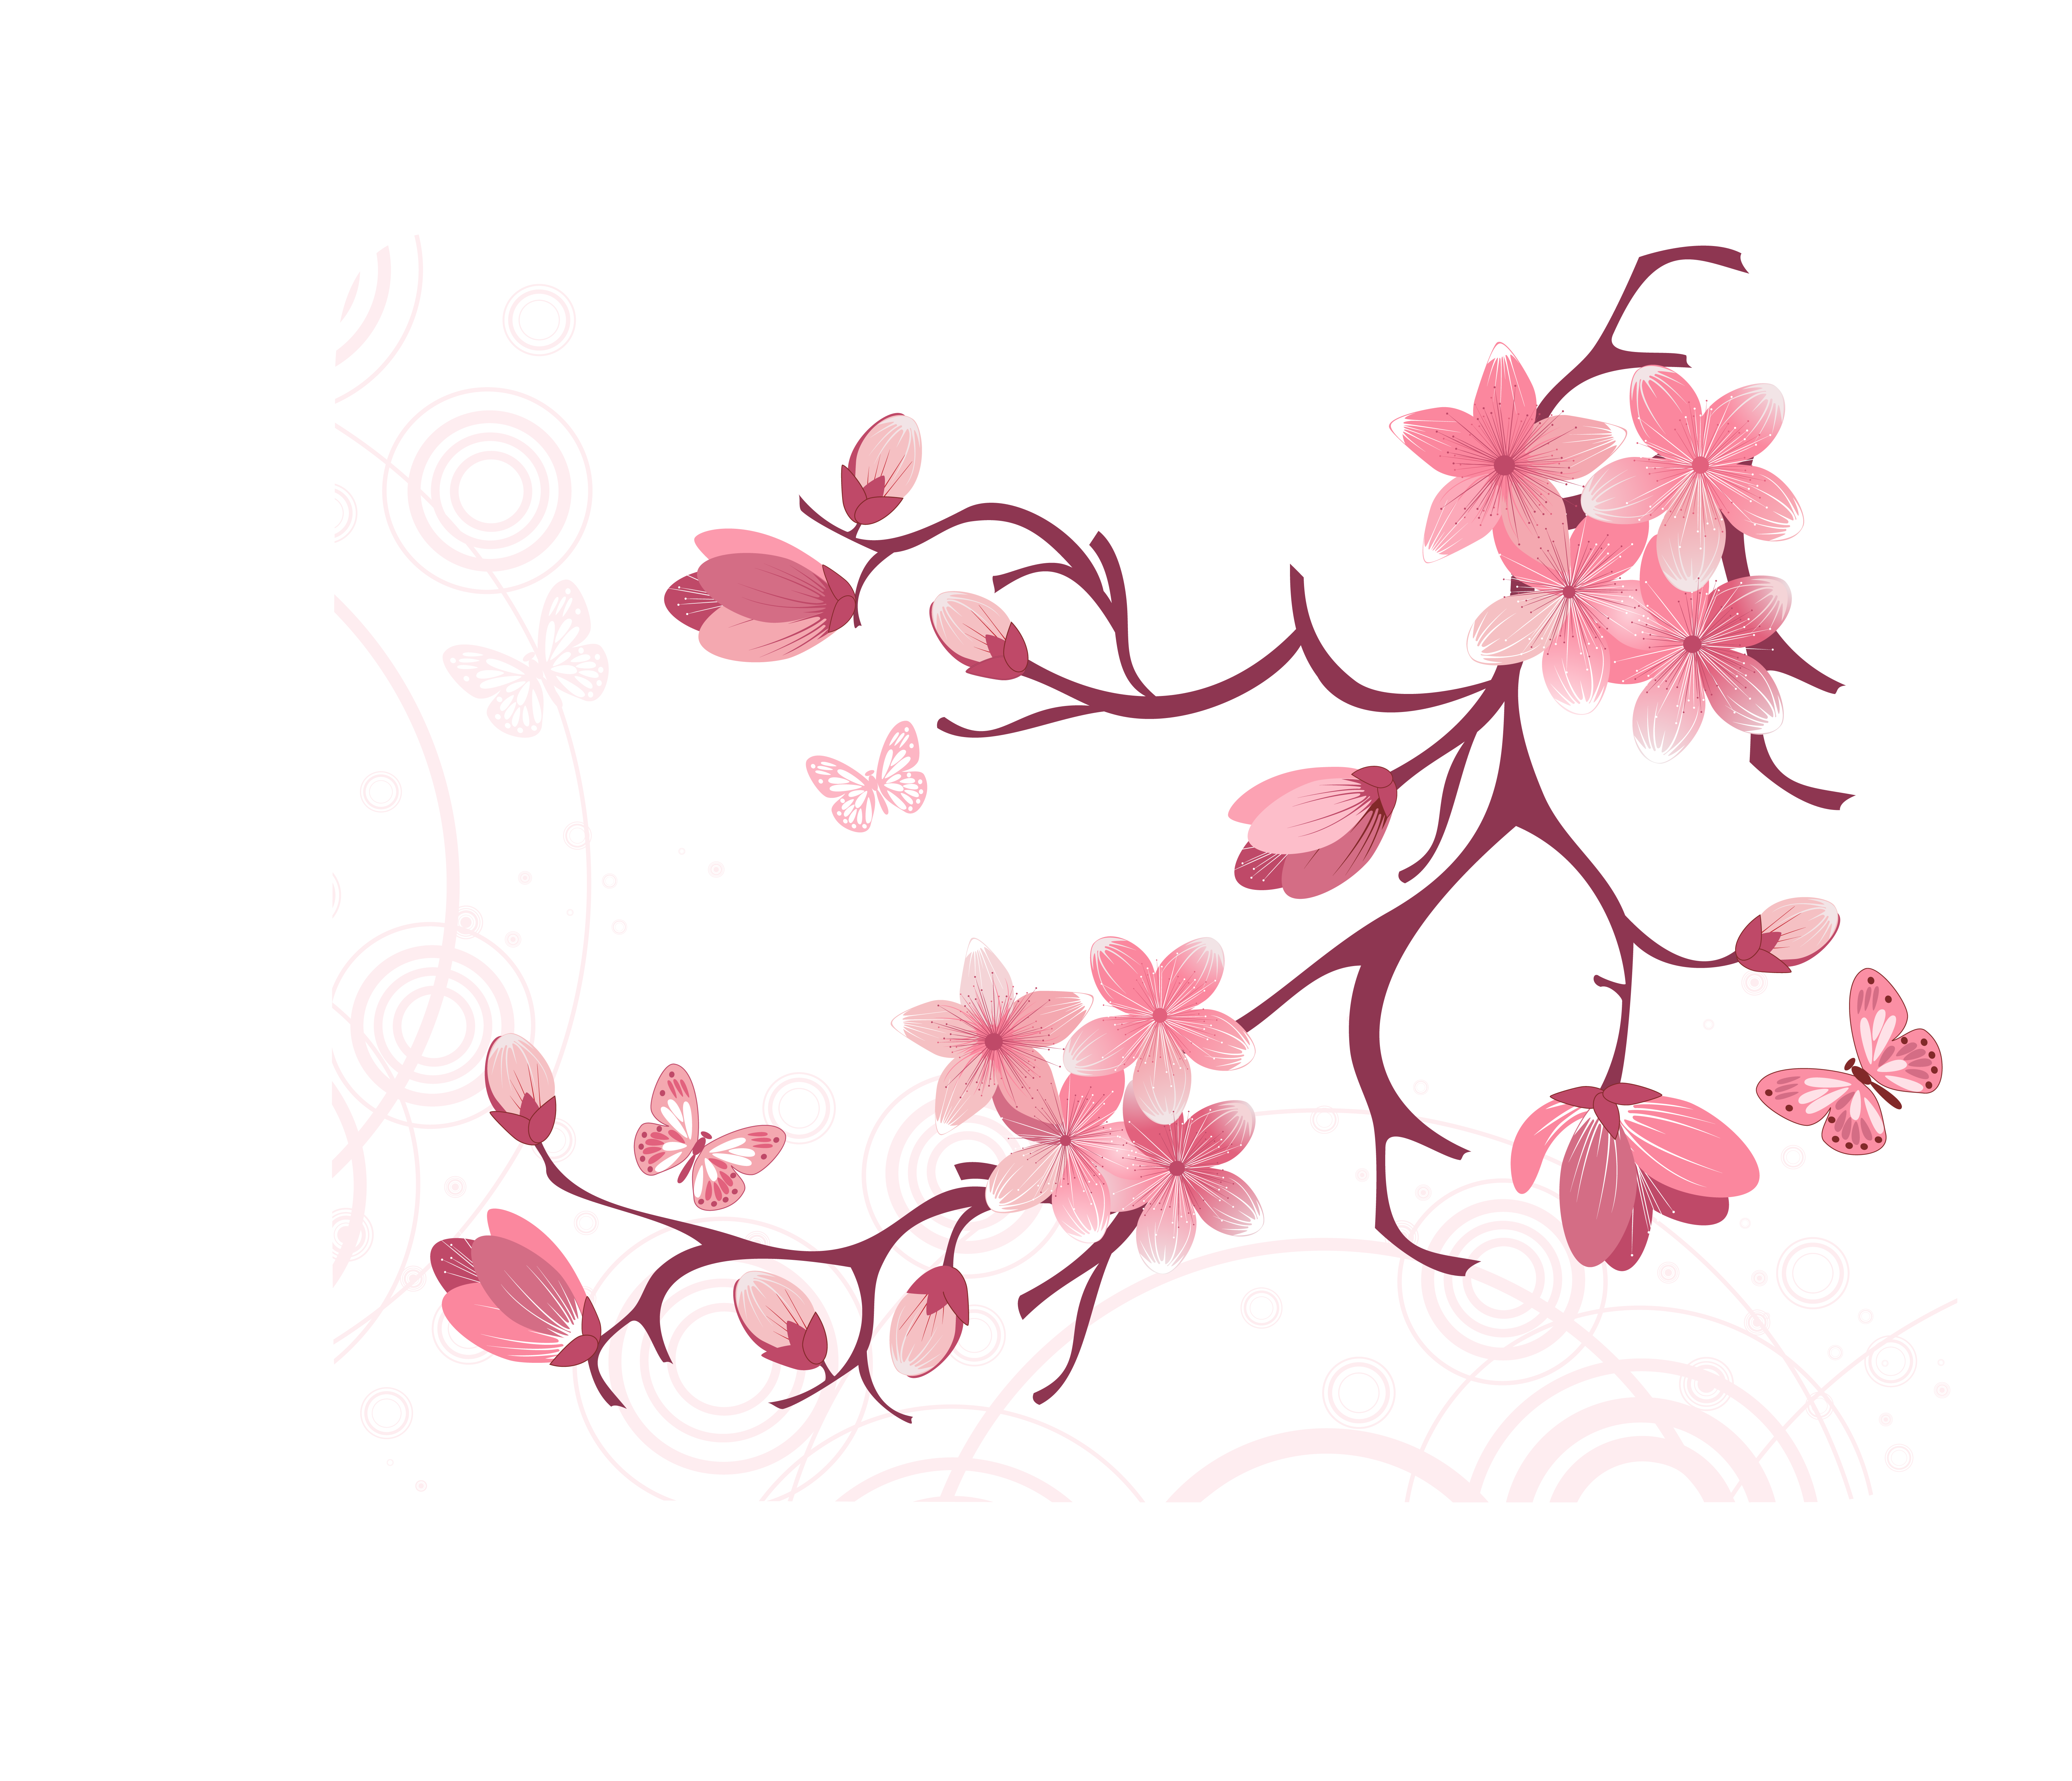 Cherry tree branch clipart clipart royalty free download Clip art - Vector tree branches flowers 6200*5328 transprent Png ... clipart royalty free download